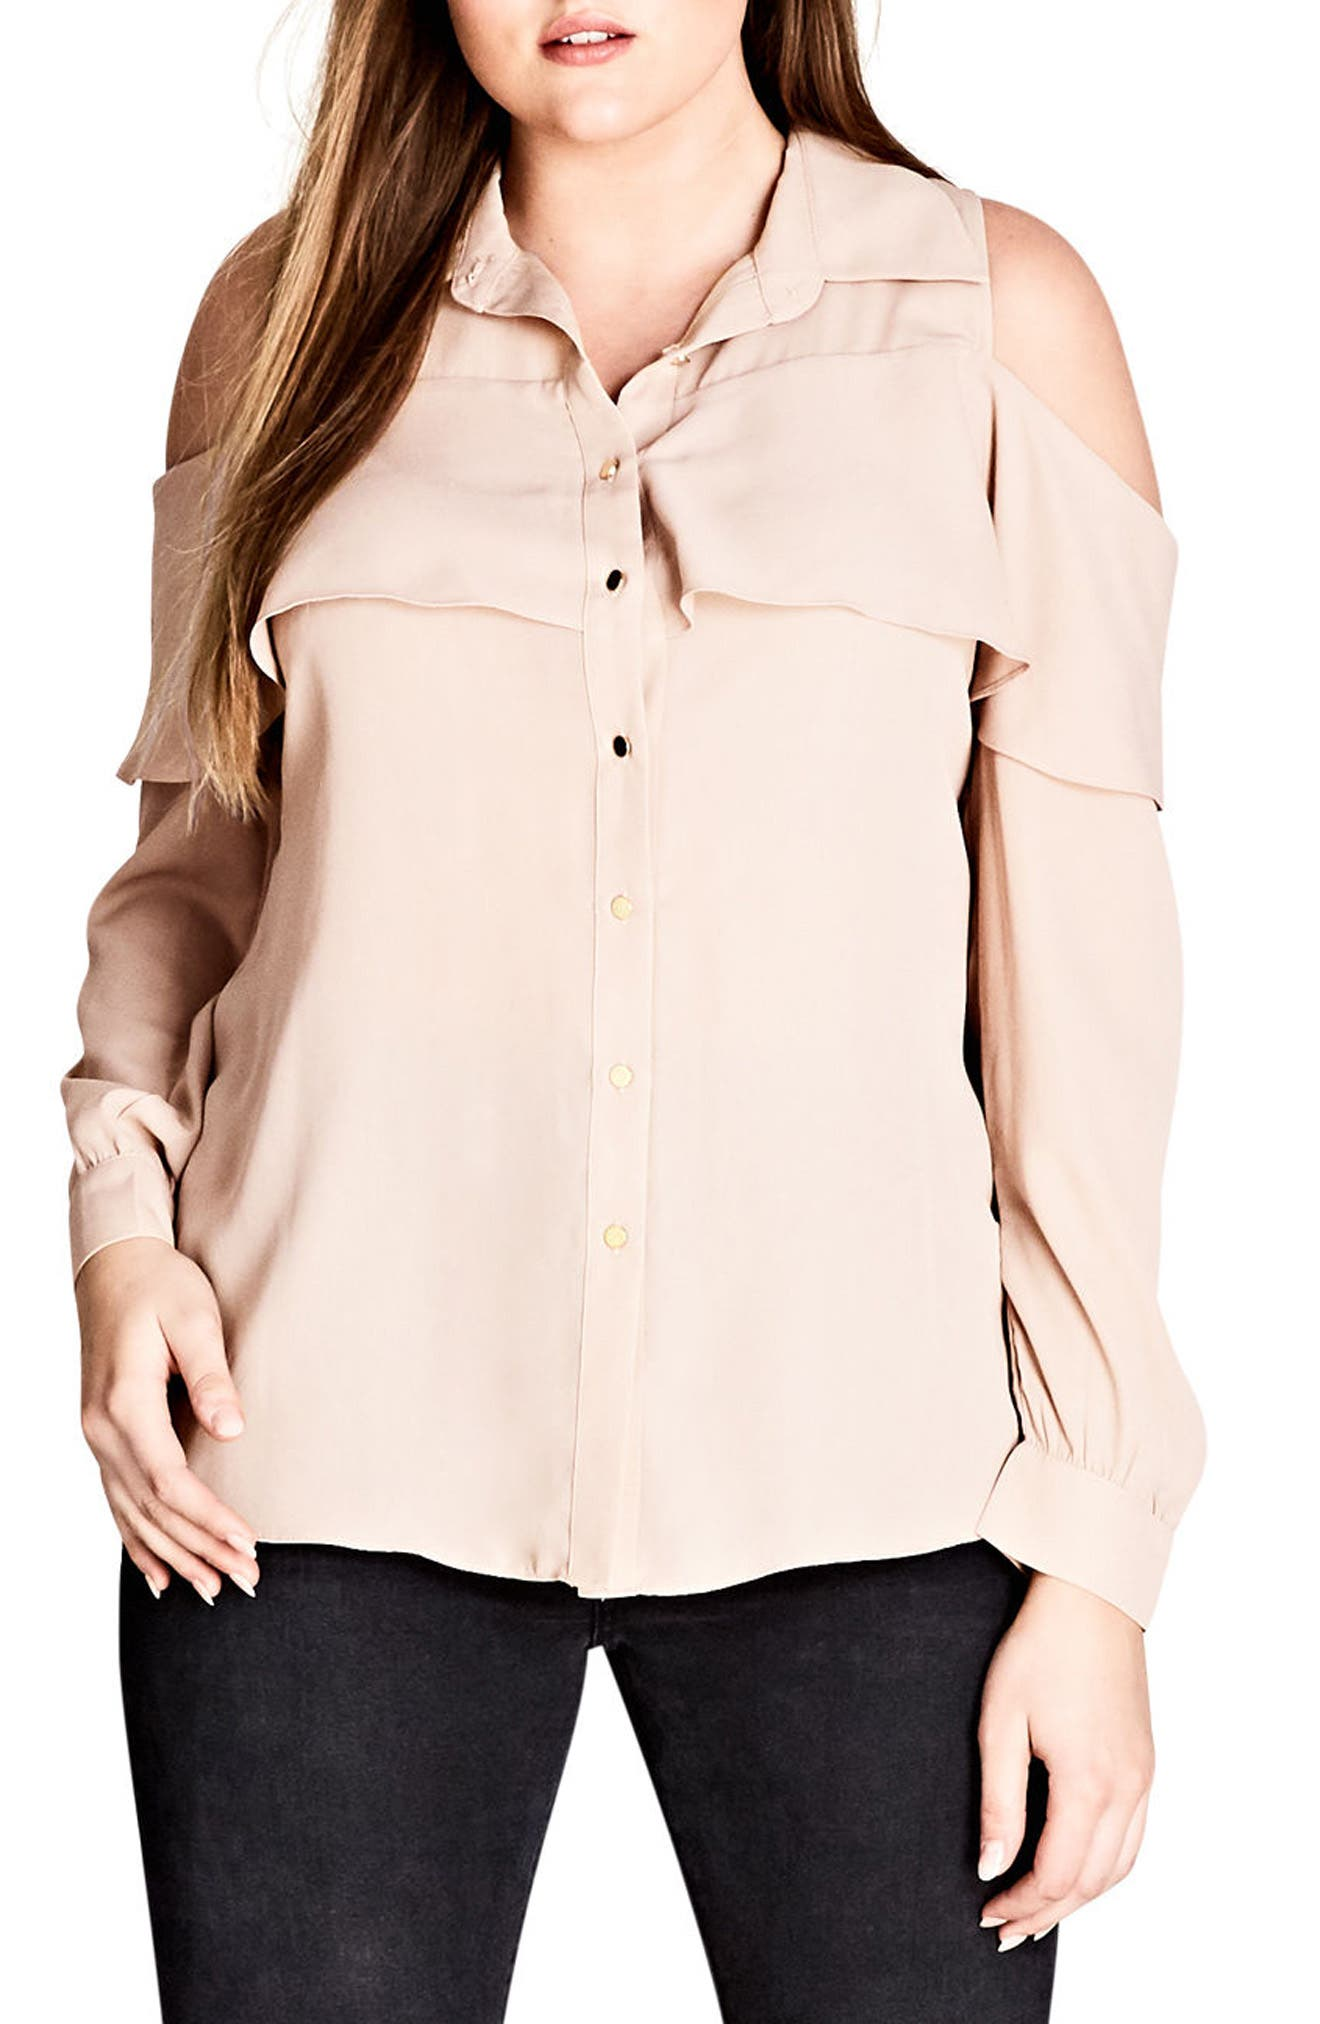 Alternate Image 1 Selected - City Chic Frill Cold Shoulder Shirt (Plus Size)